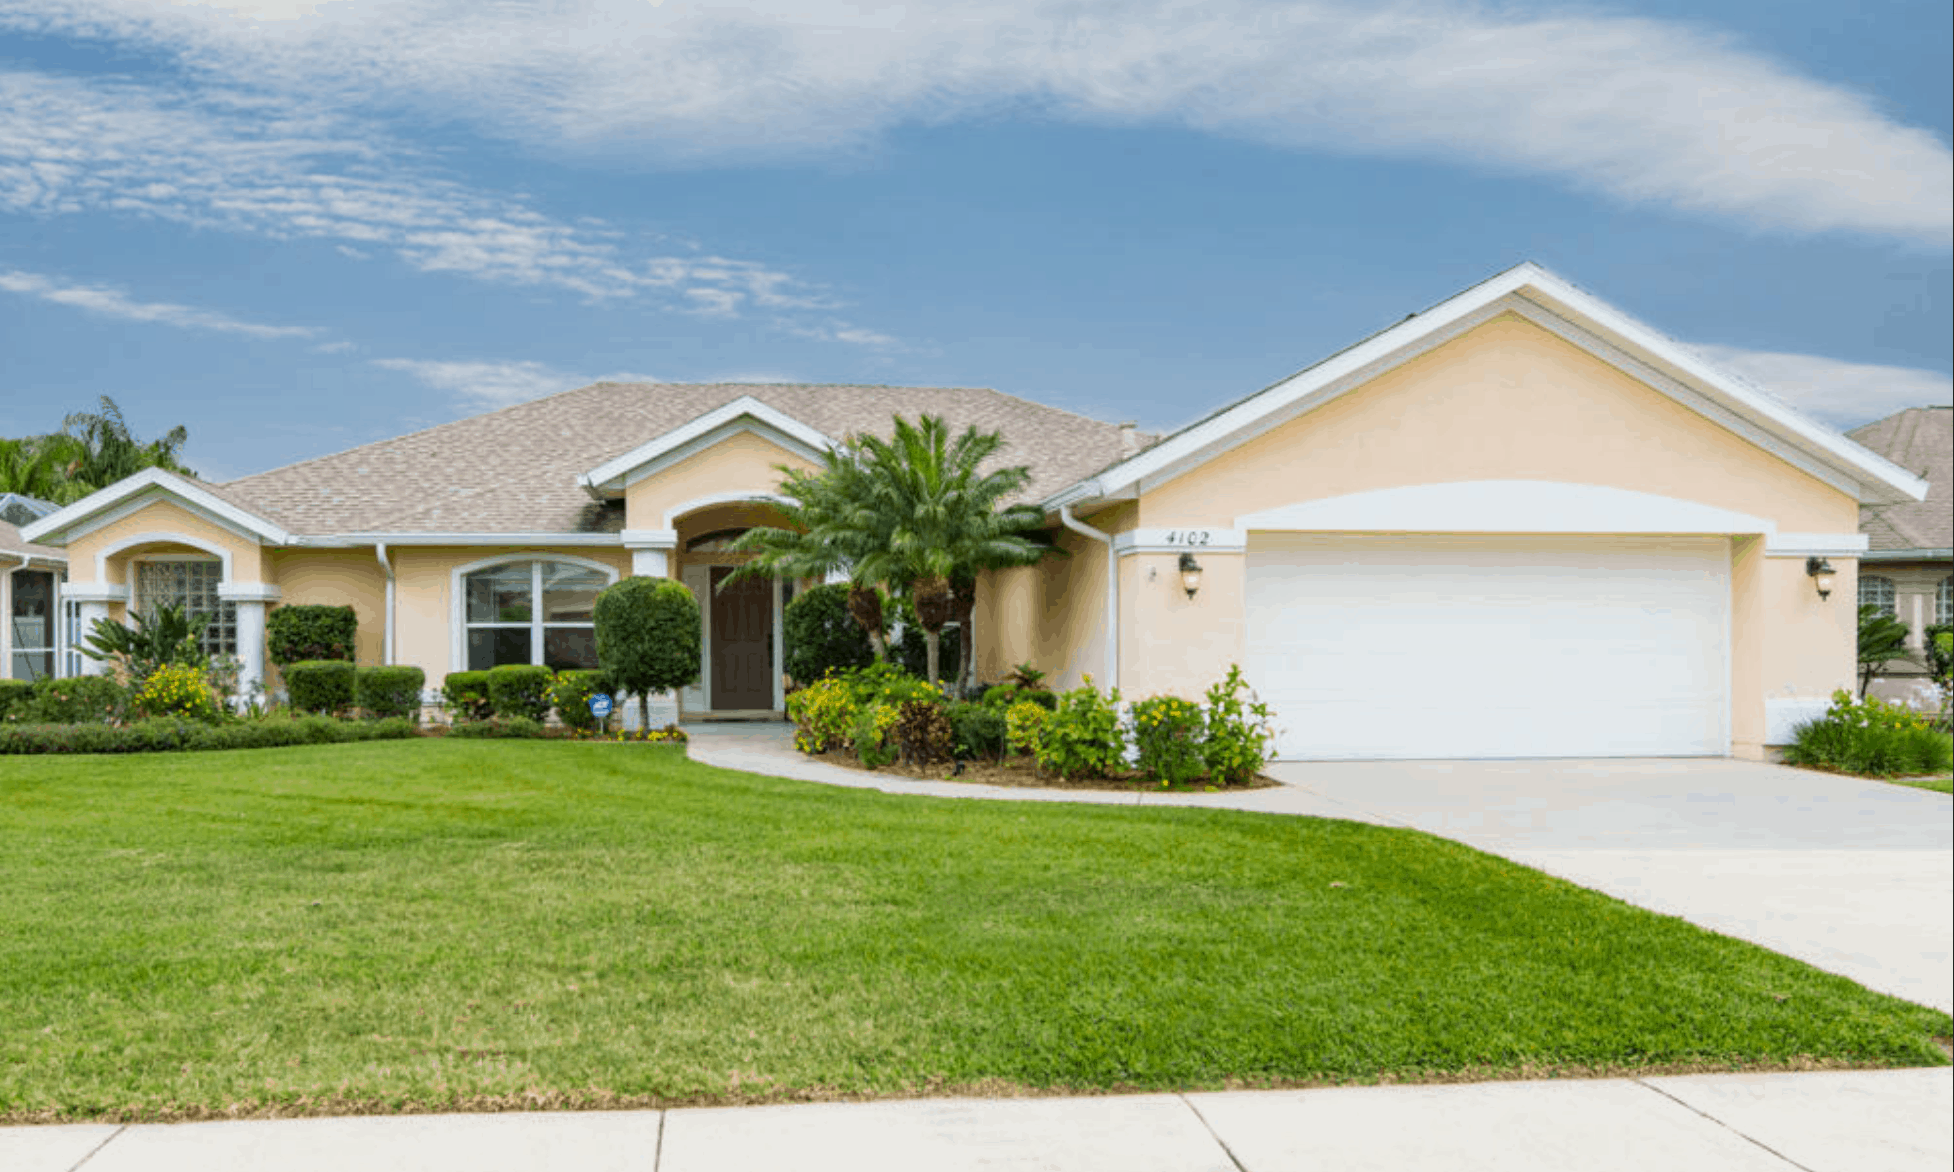 JUST LISTED – 4102 Las Cruces Way, Rockledge, FL 32955 – $299,900